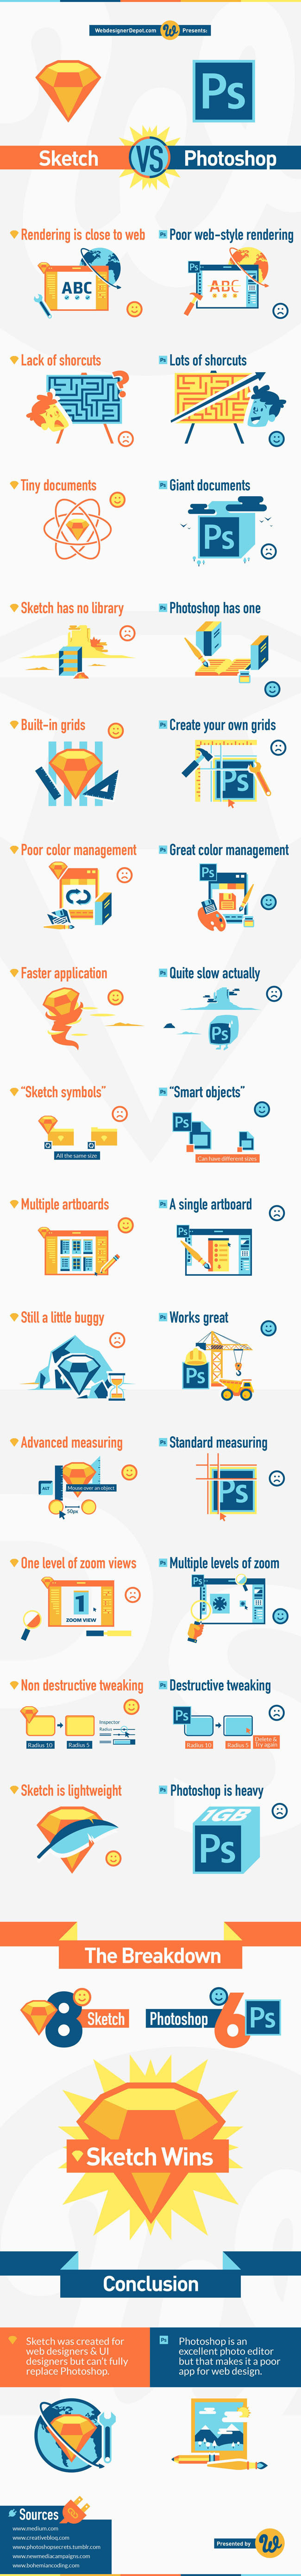 Sketch vs Photoshop, a Side-by-side Comparison [Infographic]